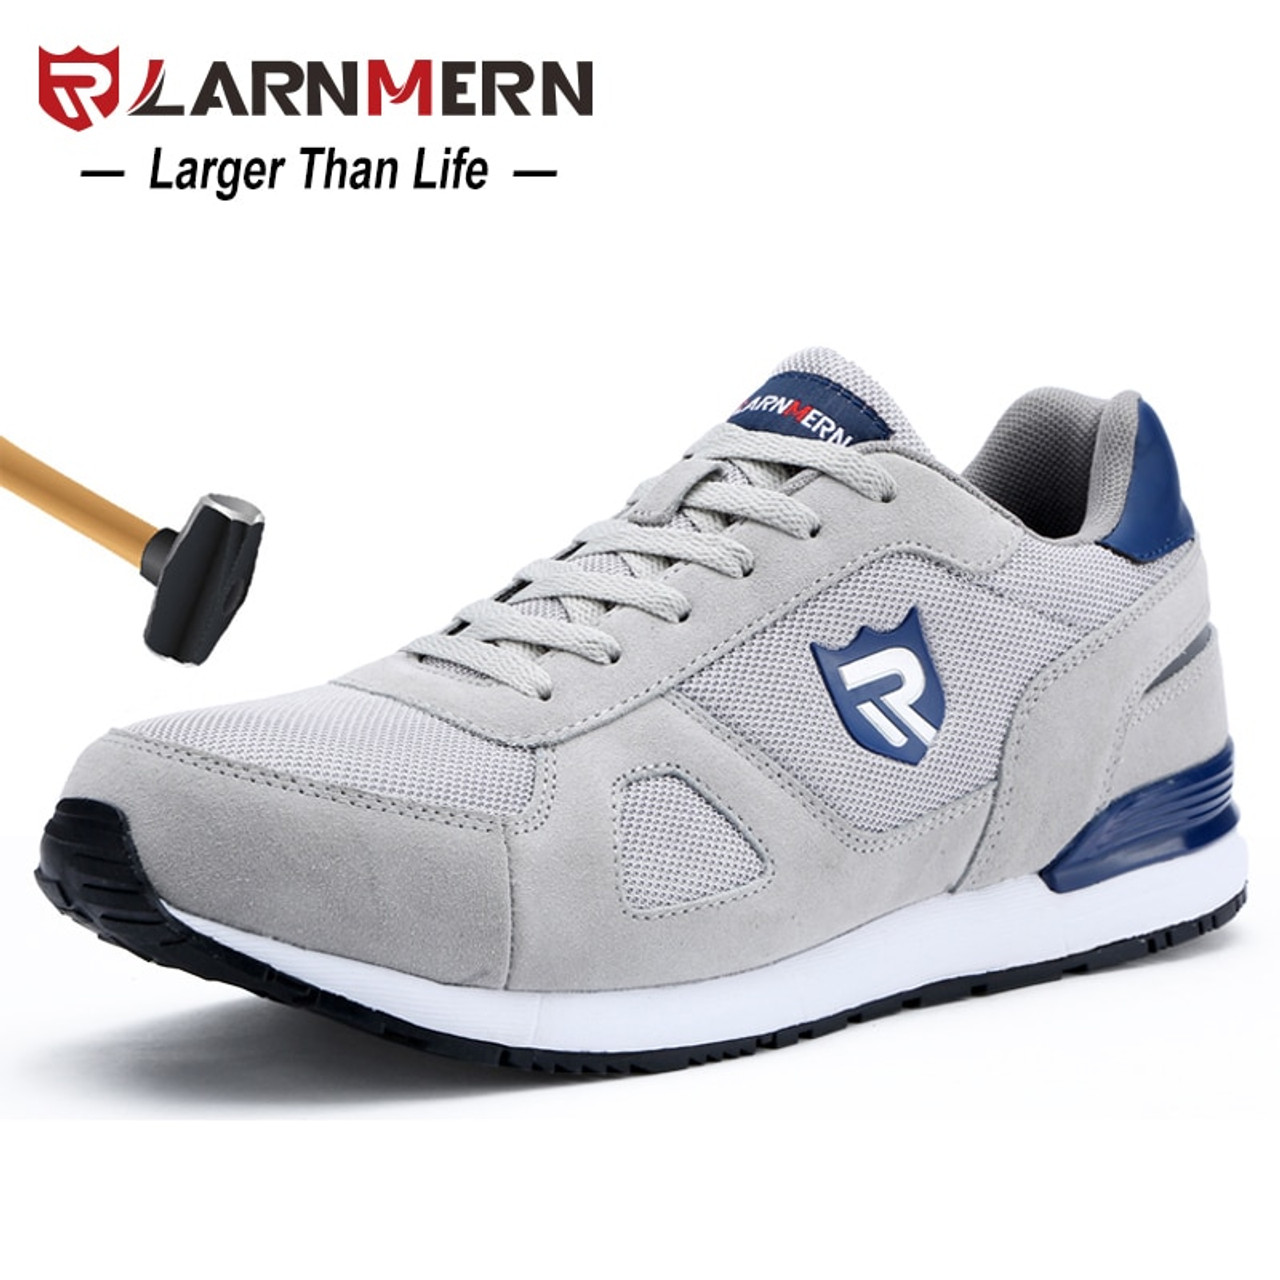 96b4c01d5663 LARNMERN Men Steel Toe Safety Shoes Casual Breathable Suede Work Shoes For  Men Protective Construction Footwear Sneaker